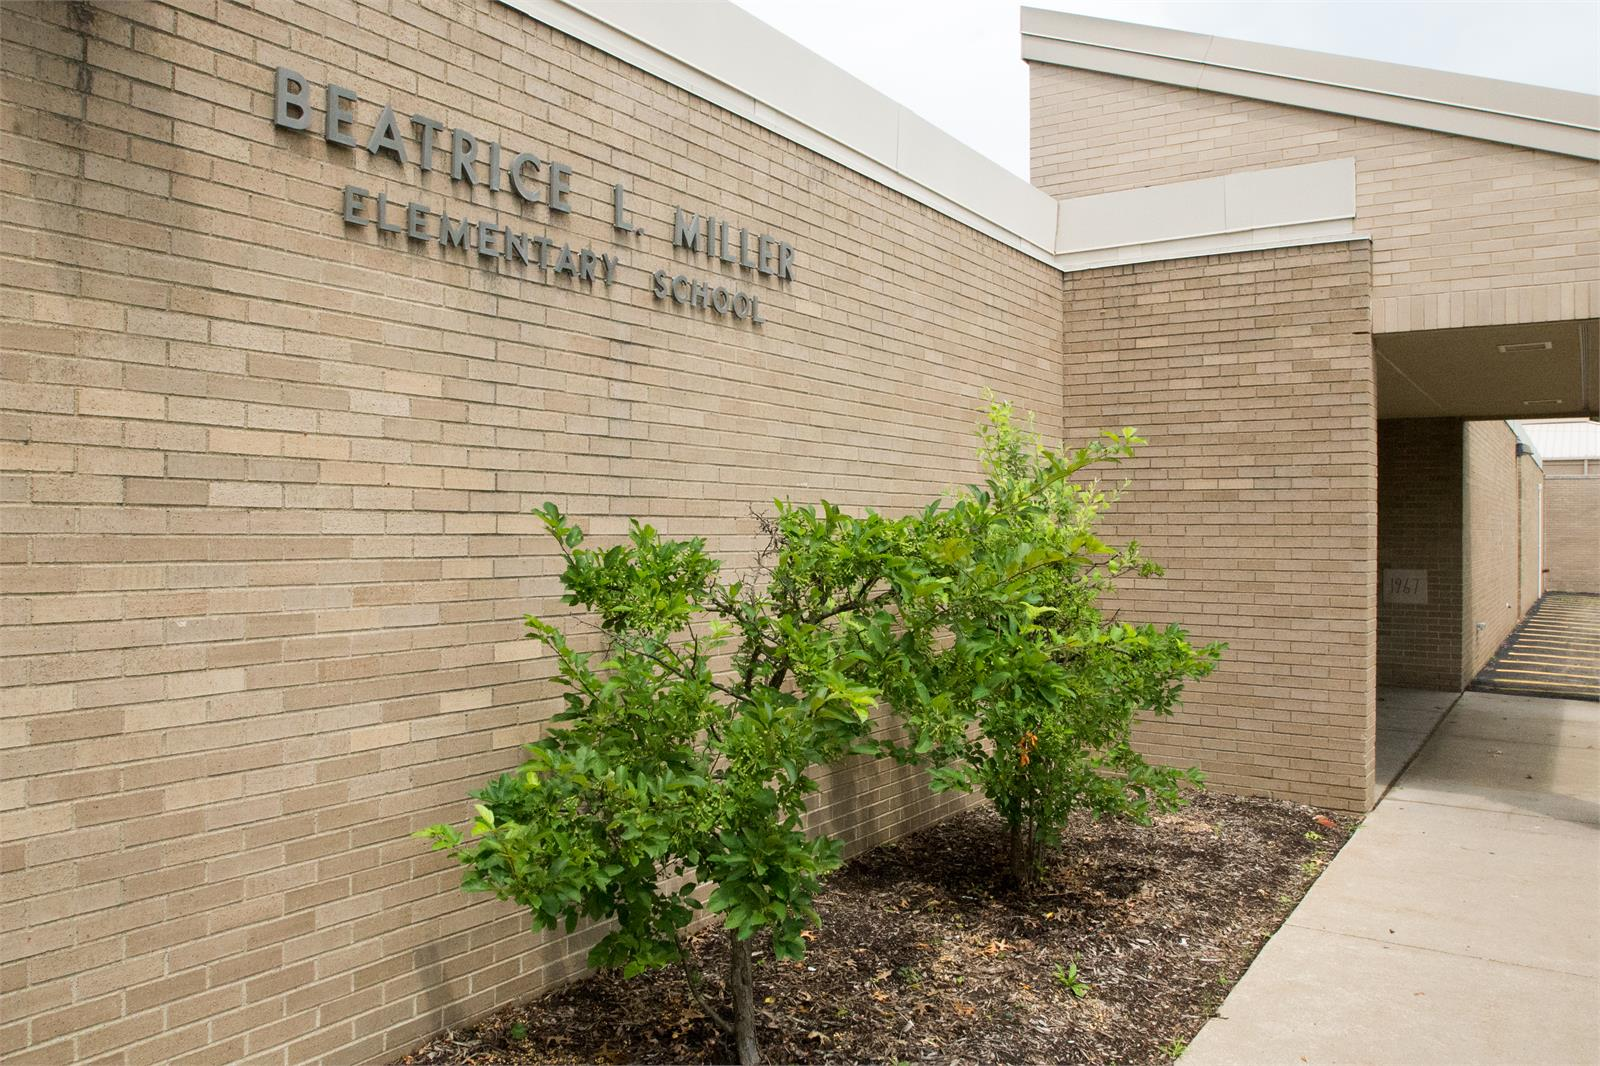 BL Miller School Entrance